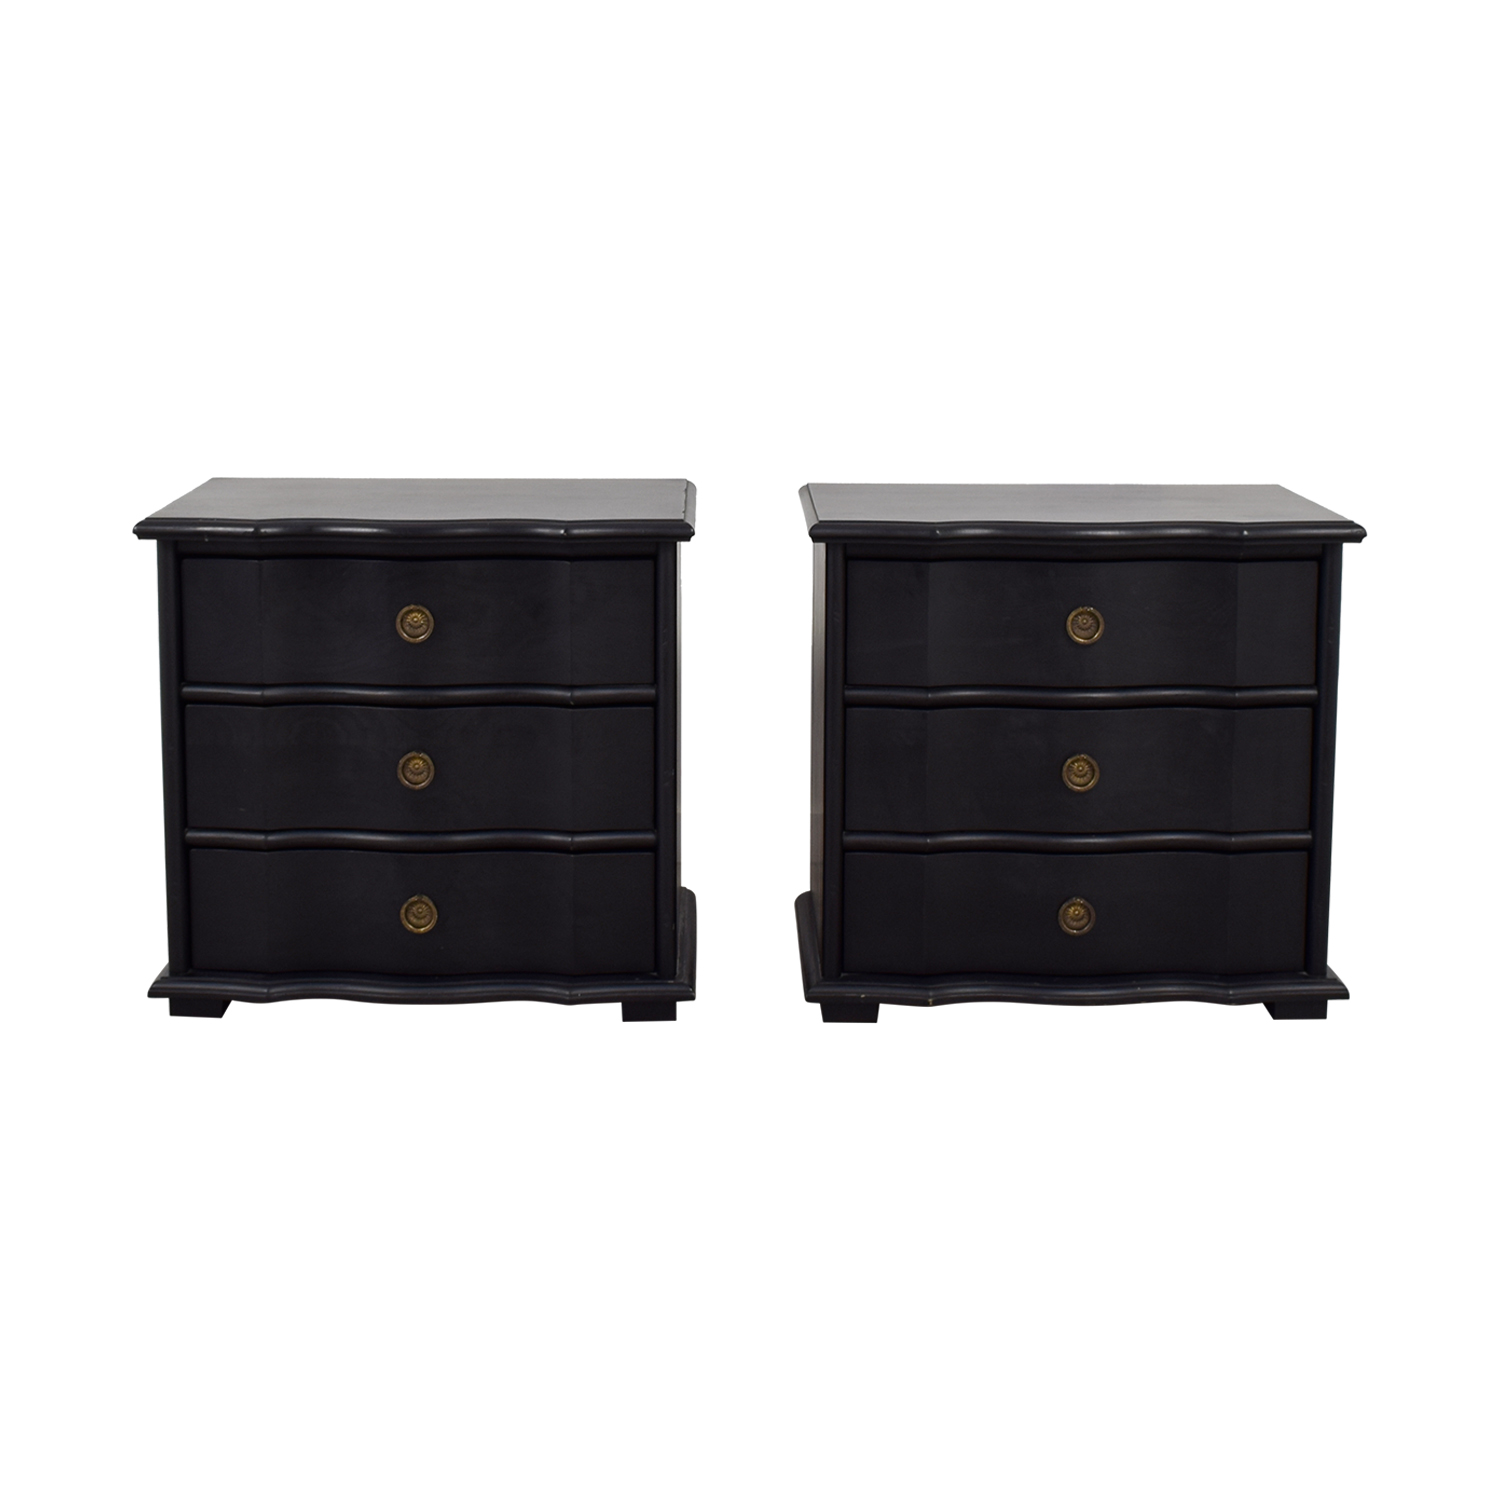 off restoration hardware italian baroque black wood three drawer nightstands accent table small battery operated lamps large cloth room essentials assembly instructions rustic